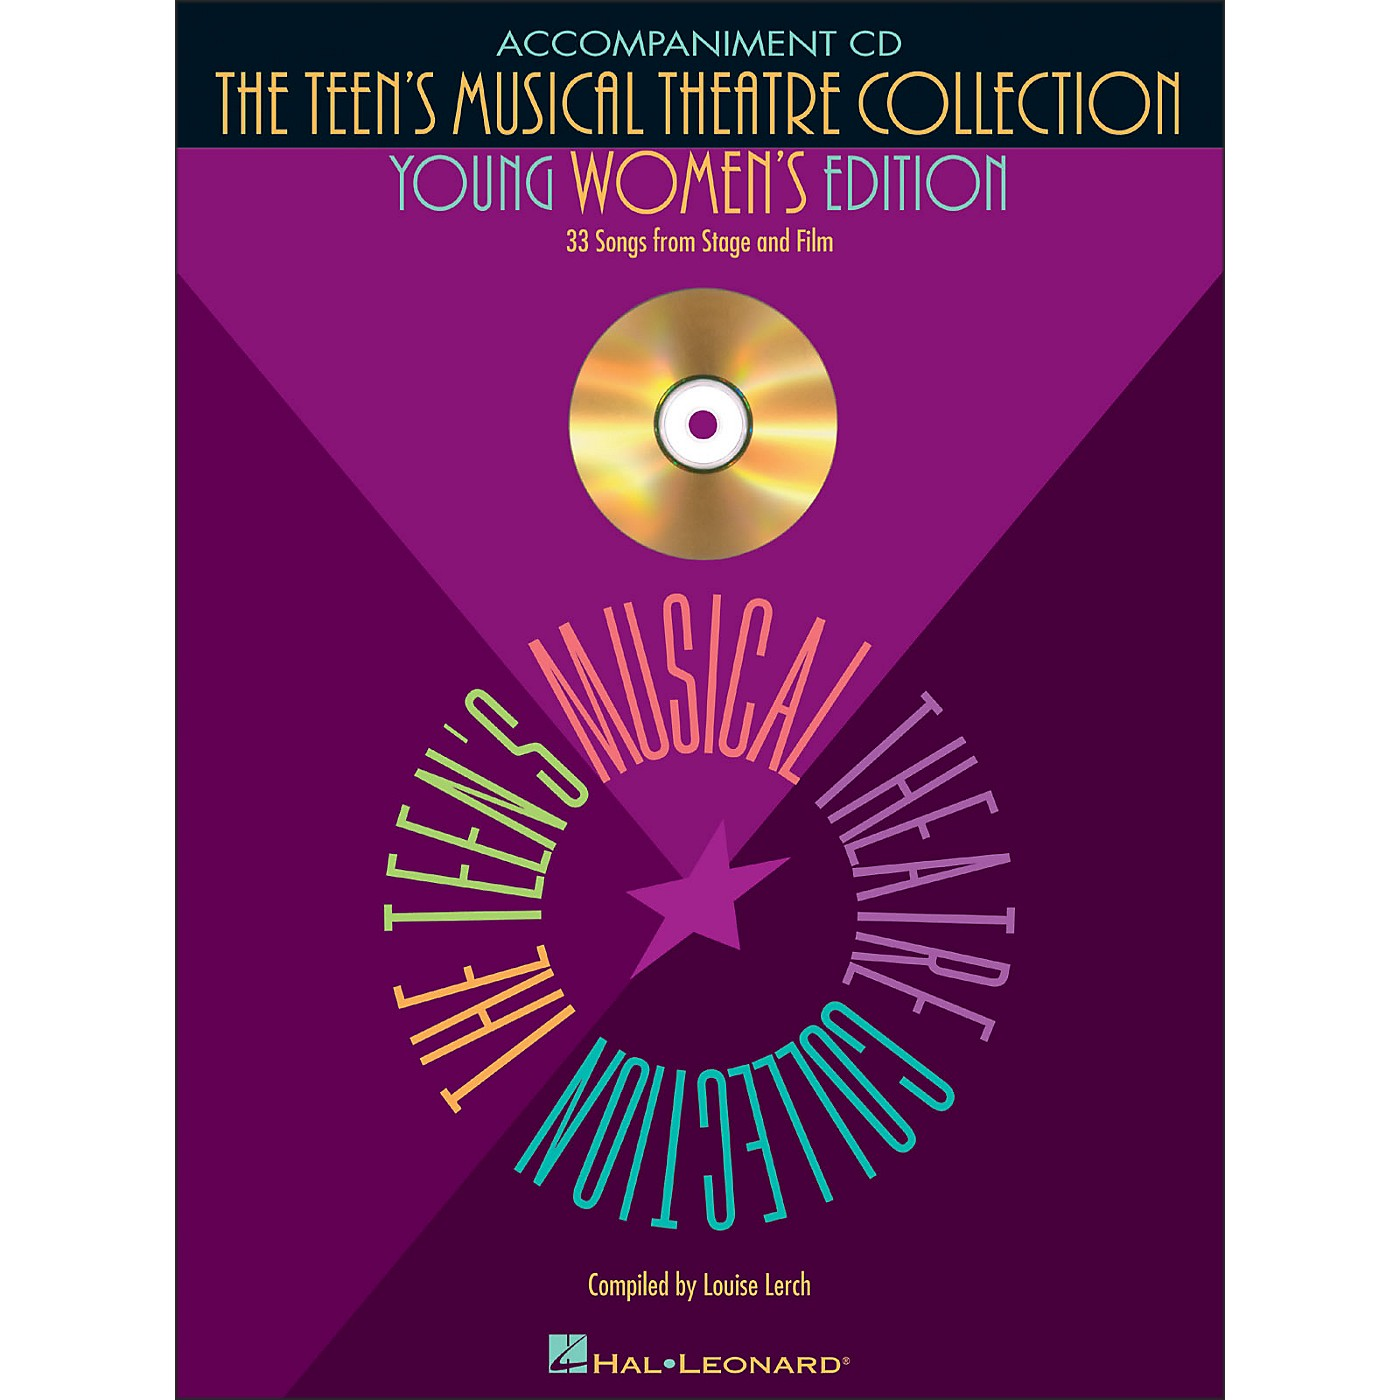 Hal Leonard Teen's Musical Theatre Collection (Young Women's Edition) Accompaniment CD thumbnail